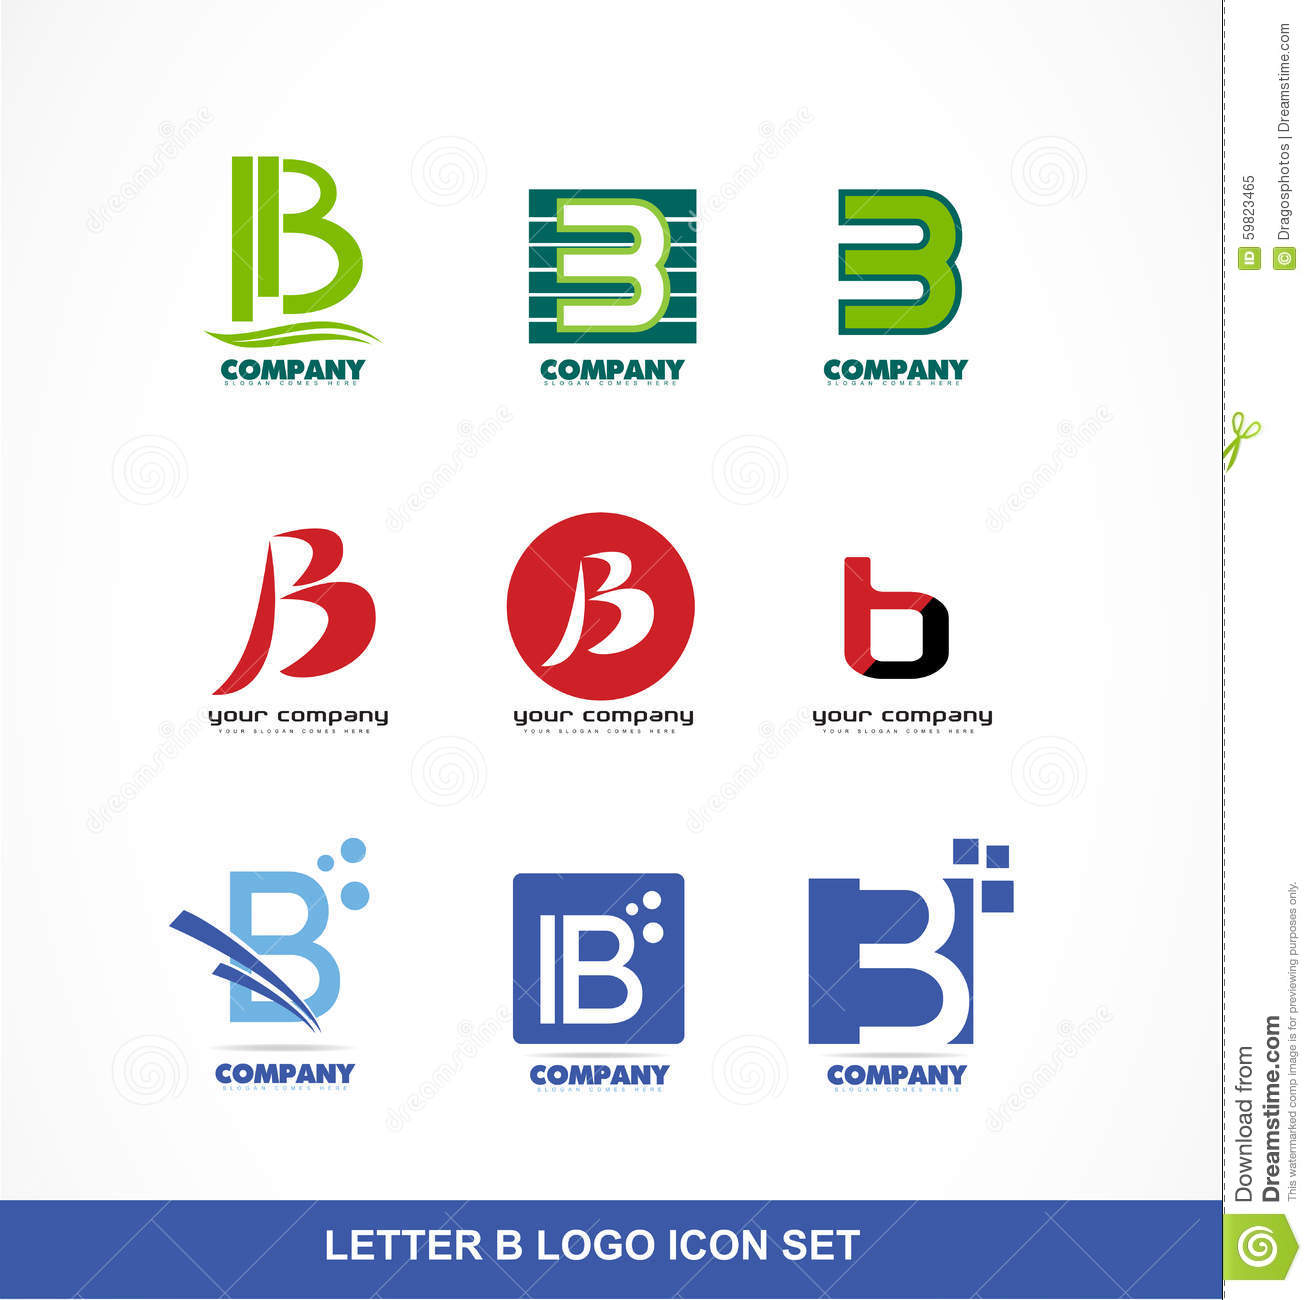 Letter B Icon Logo Set Stock Vector - Image: 59823465 - photo#35